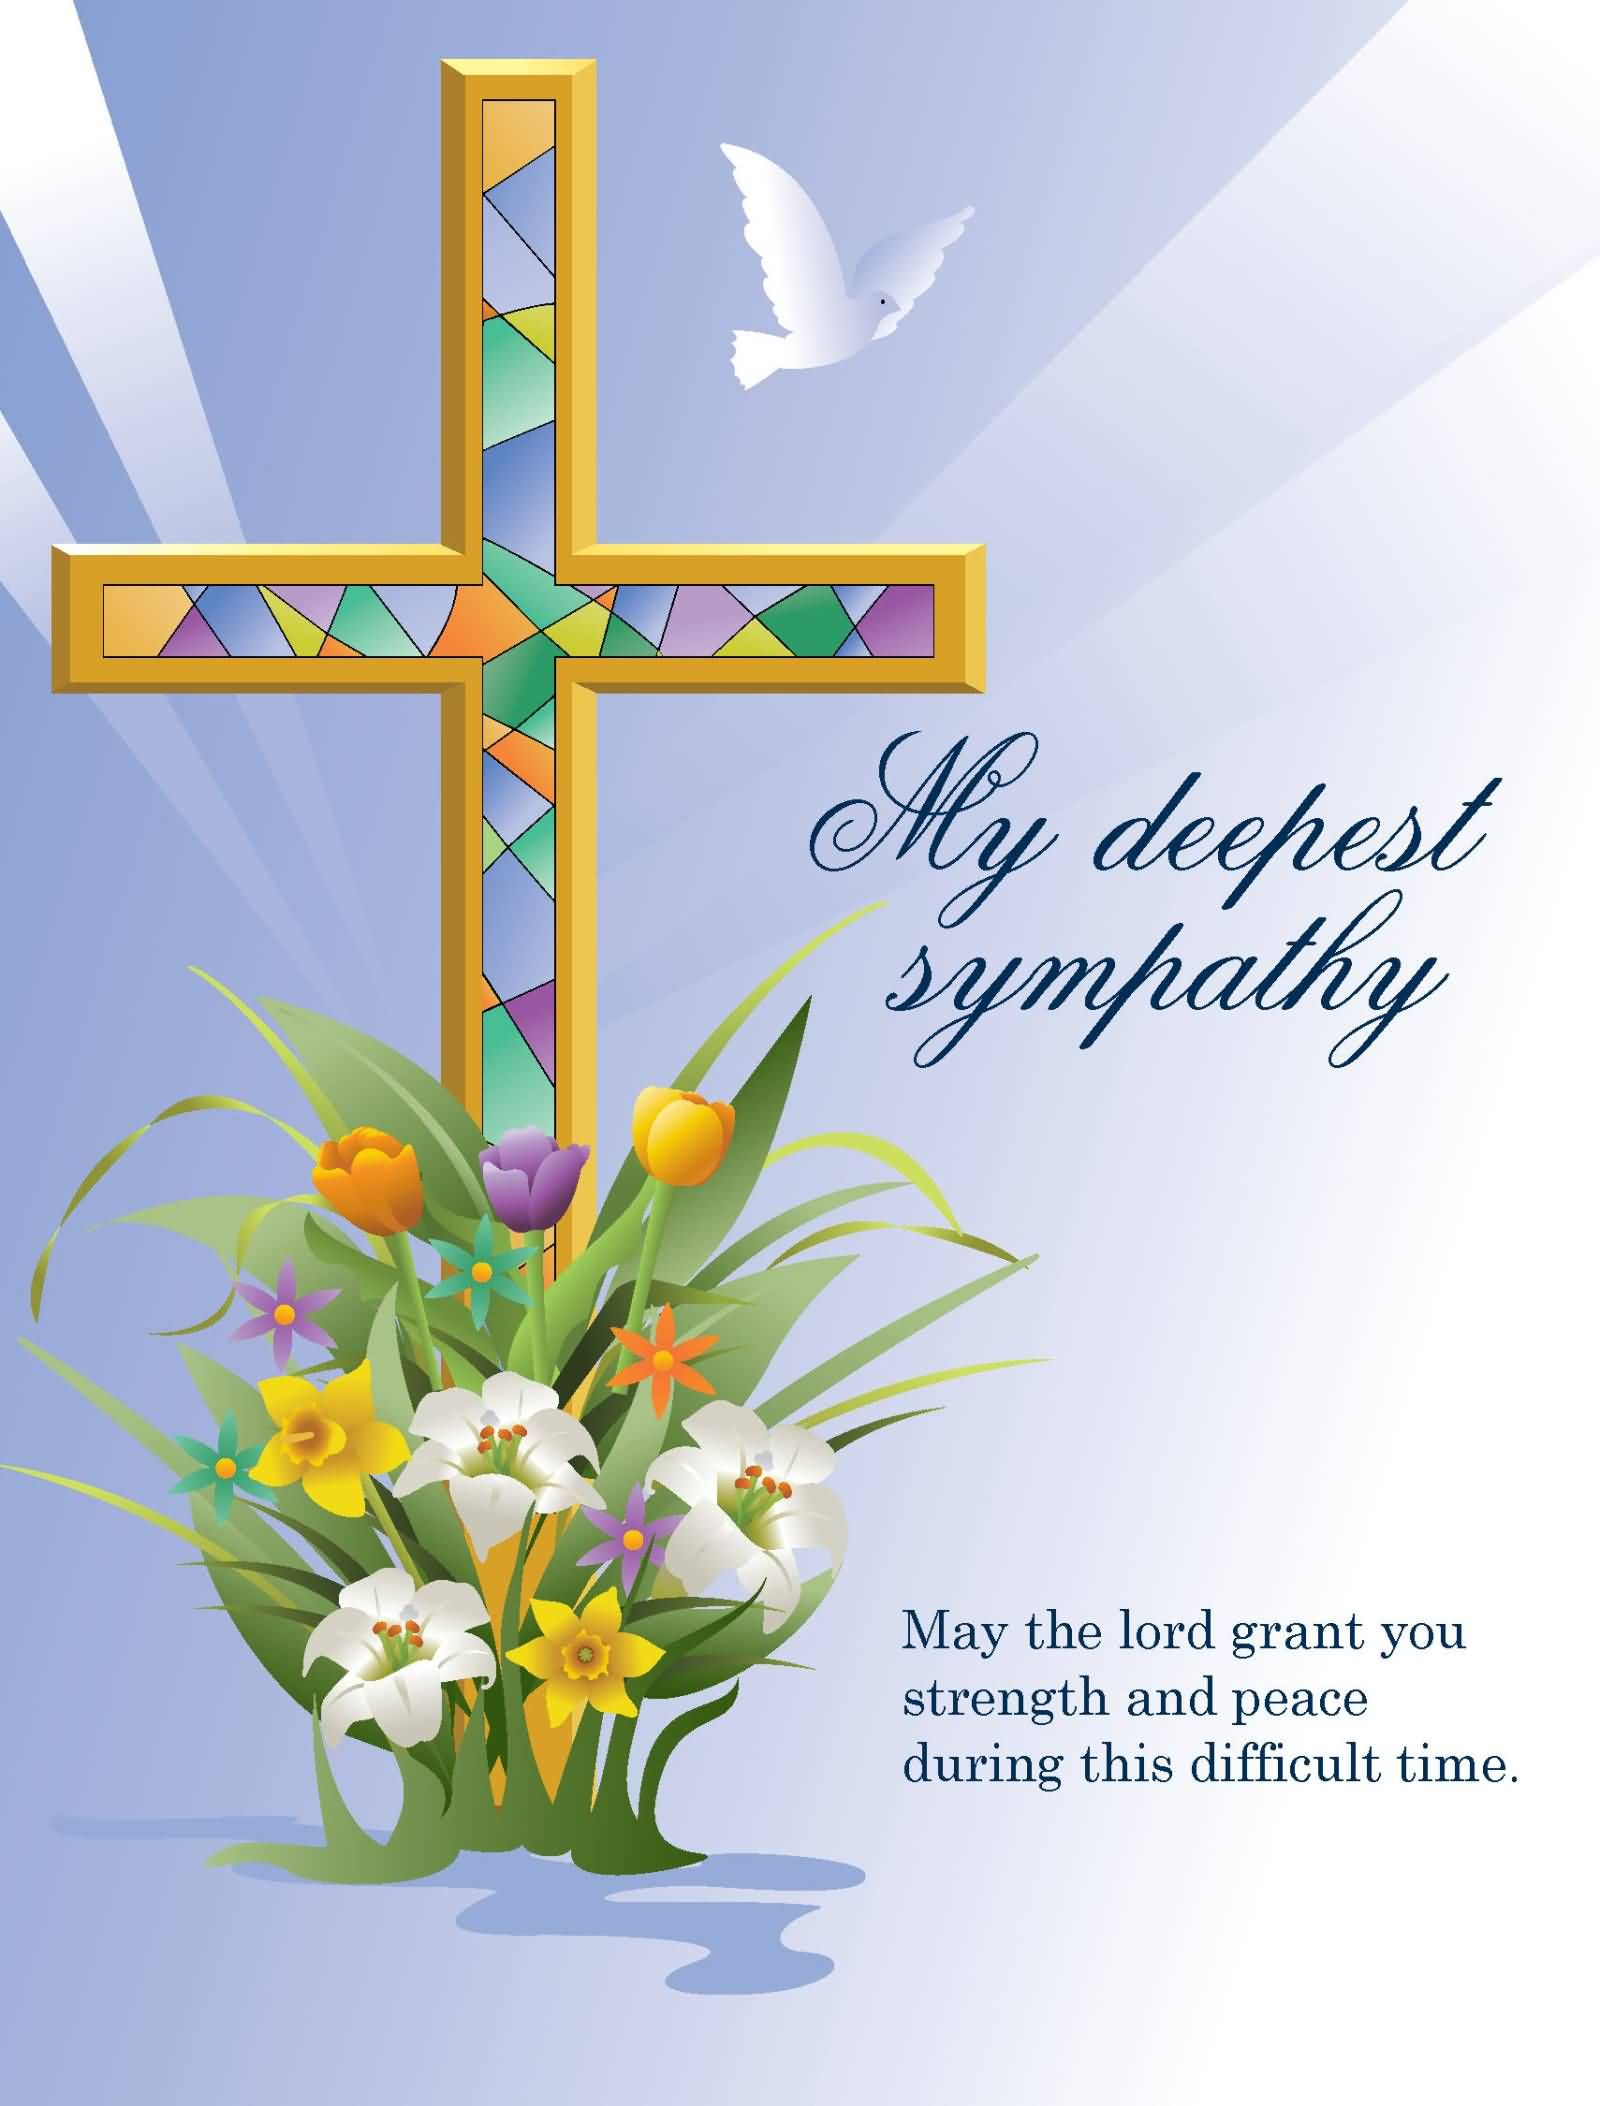 My Deepest Sympathy May The Lord Grant You Strength And Peace